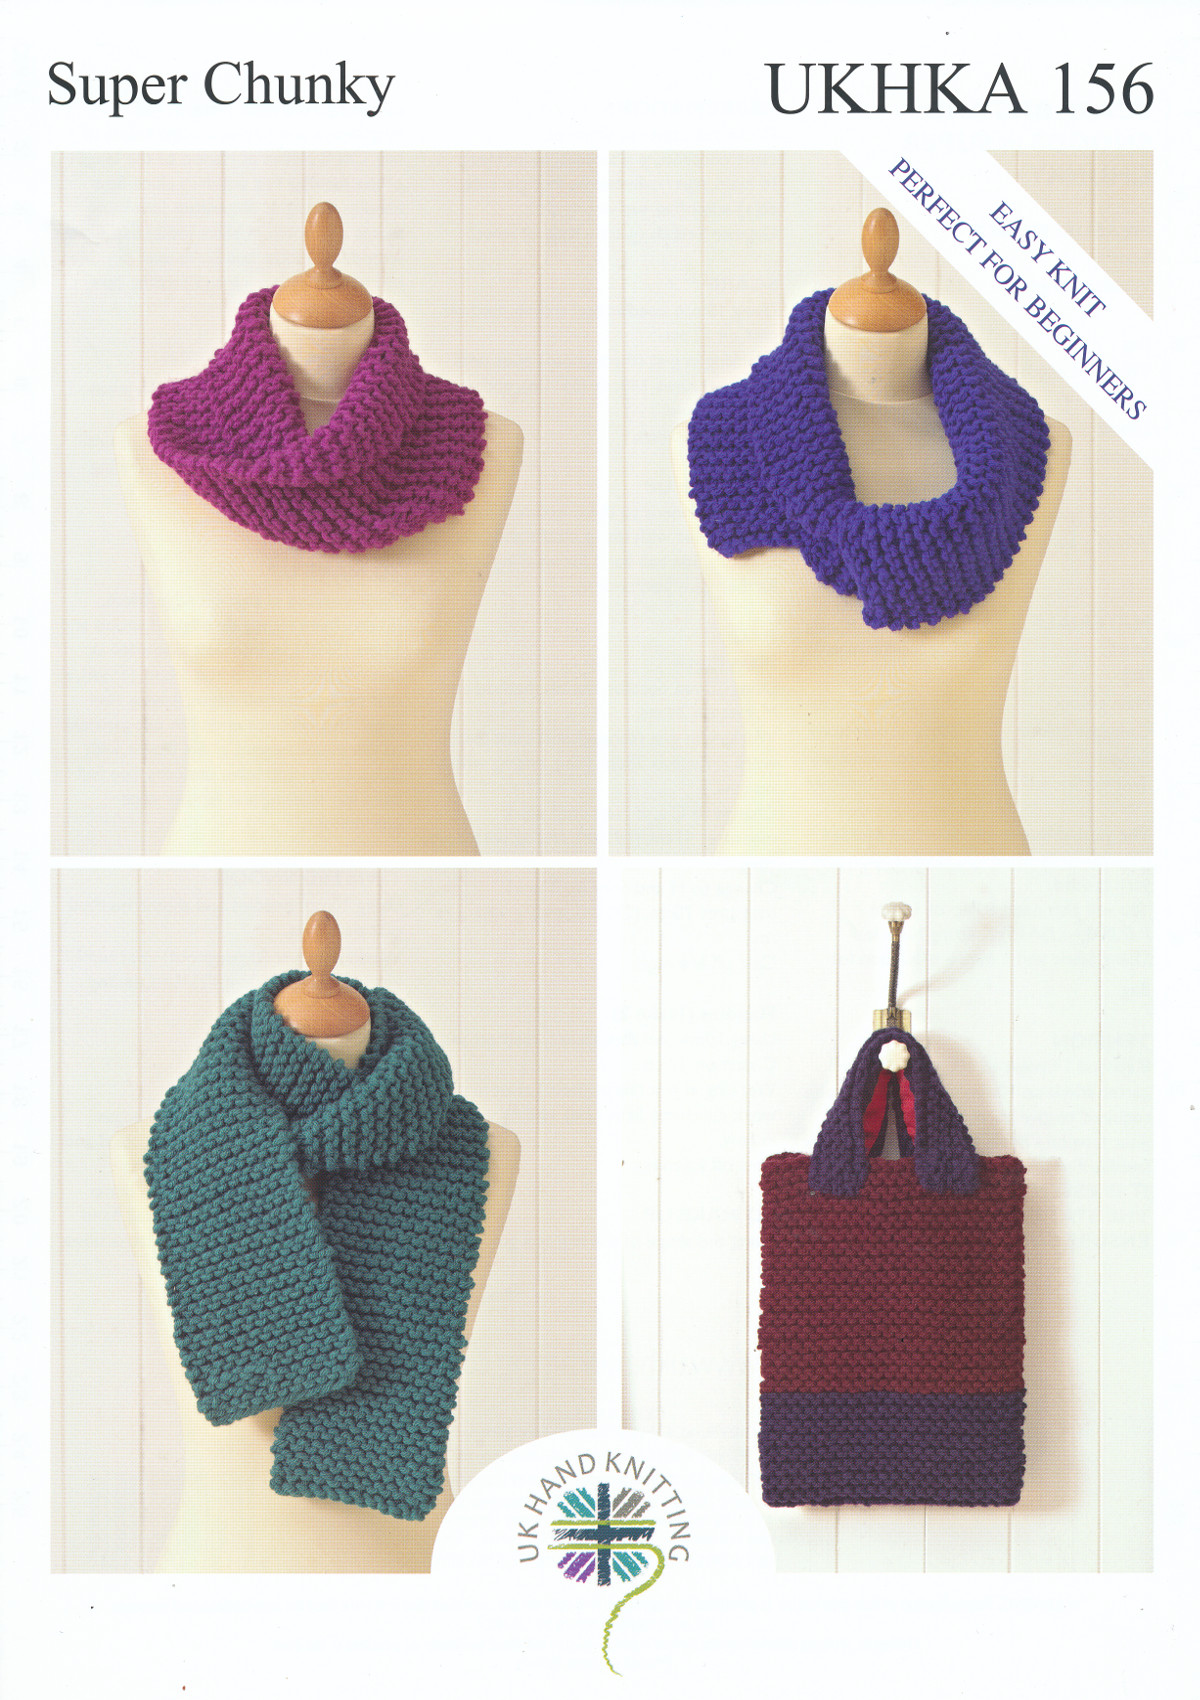 Super Chunky Knitting Pattern for Easy Knit Ladies Scarf Bag ...